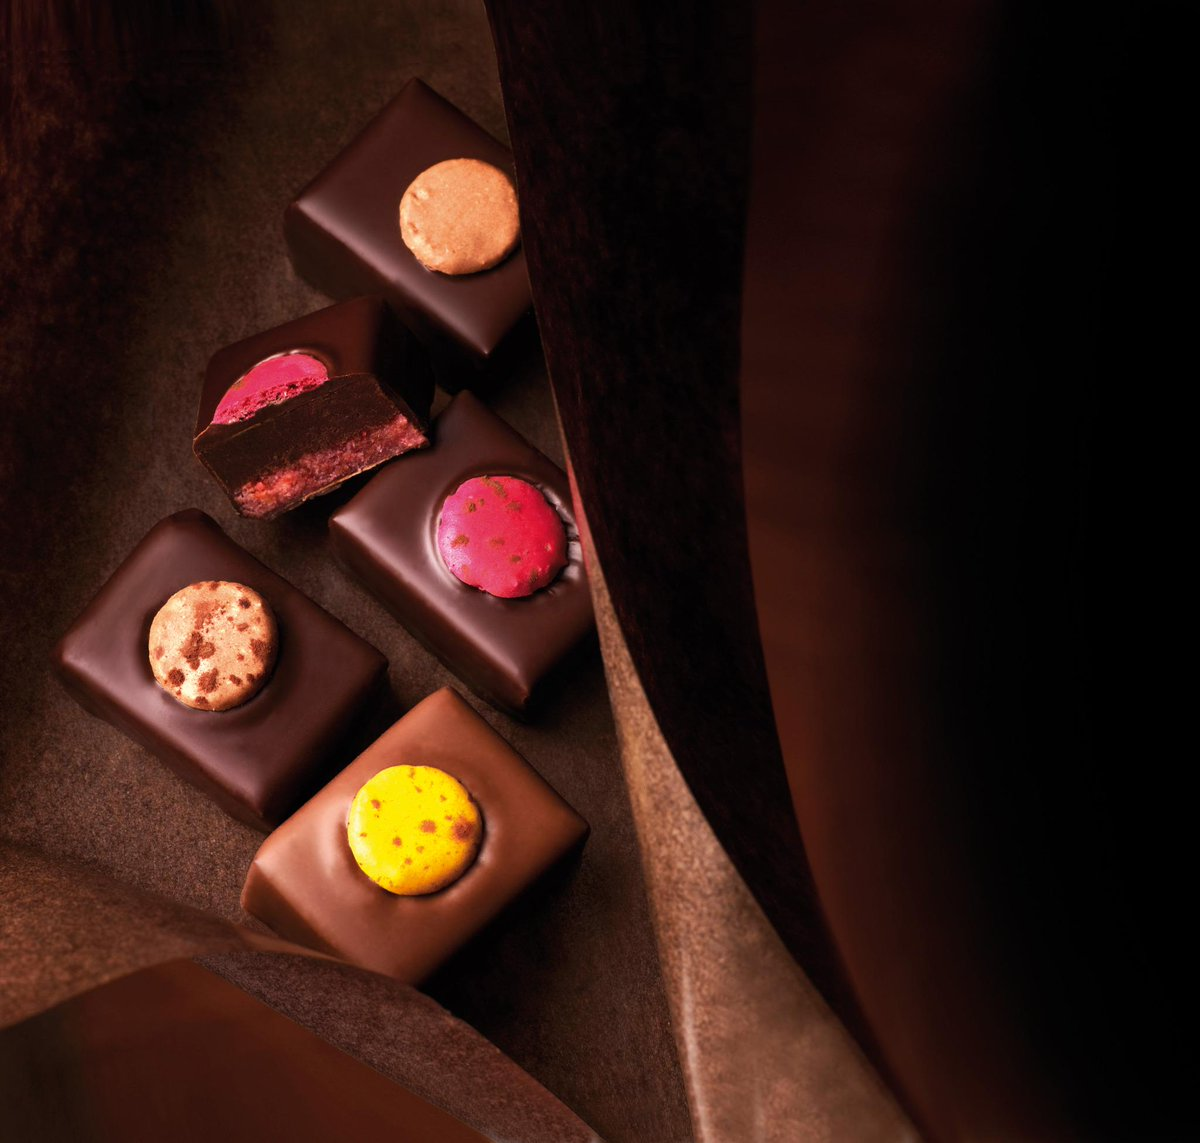 Can't choose between a macaron and a chocolate bonbon - have you tried the Chocolat au macaron? http://t.co/6bVcONZr0a